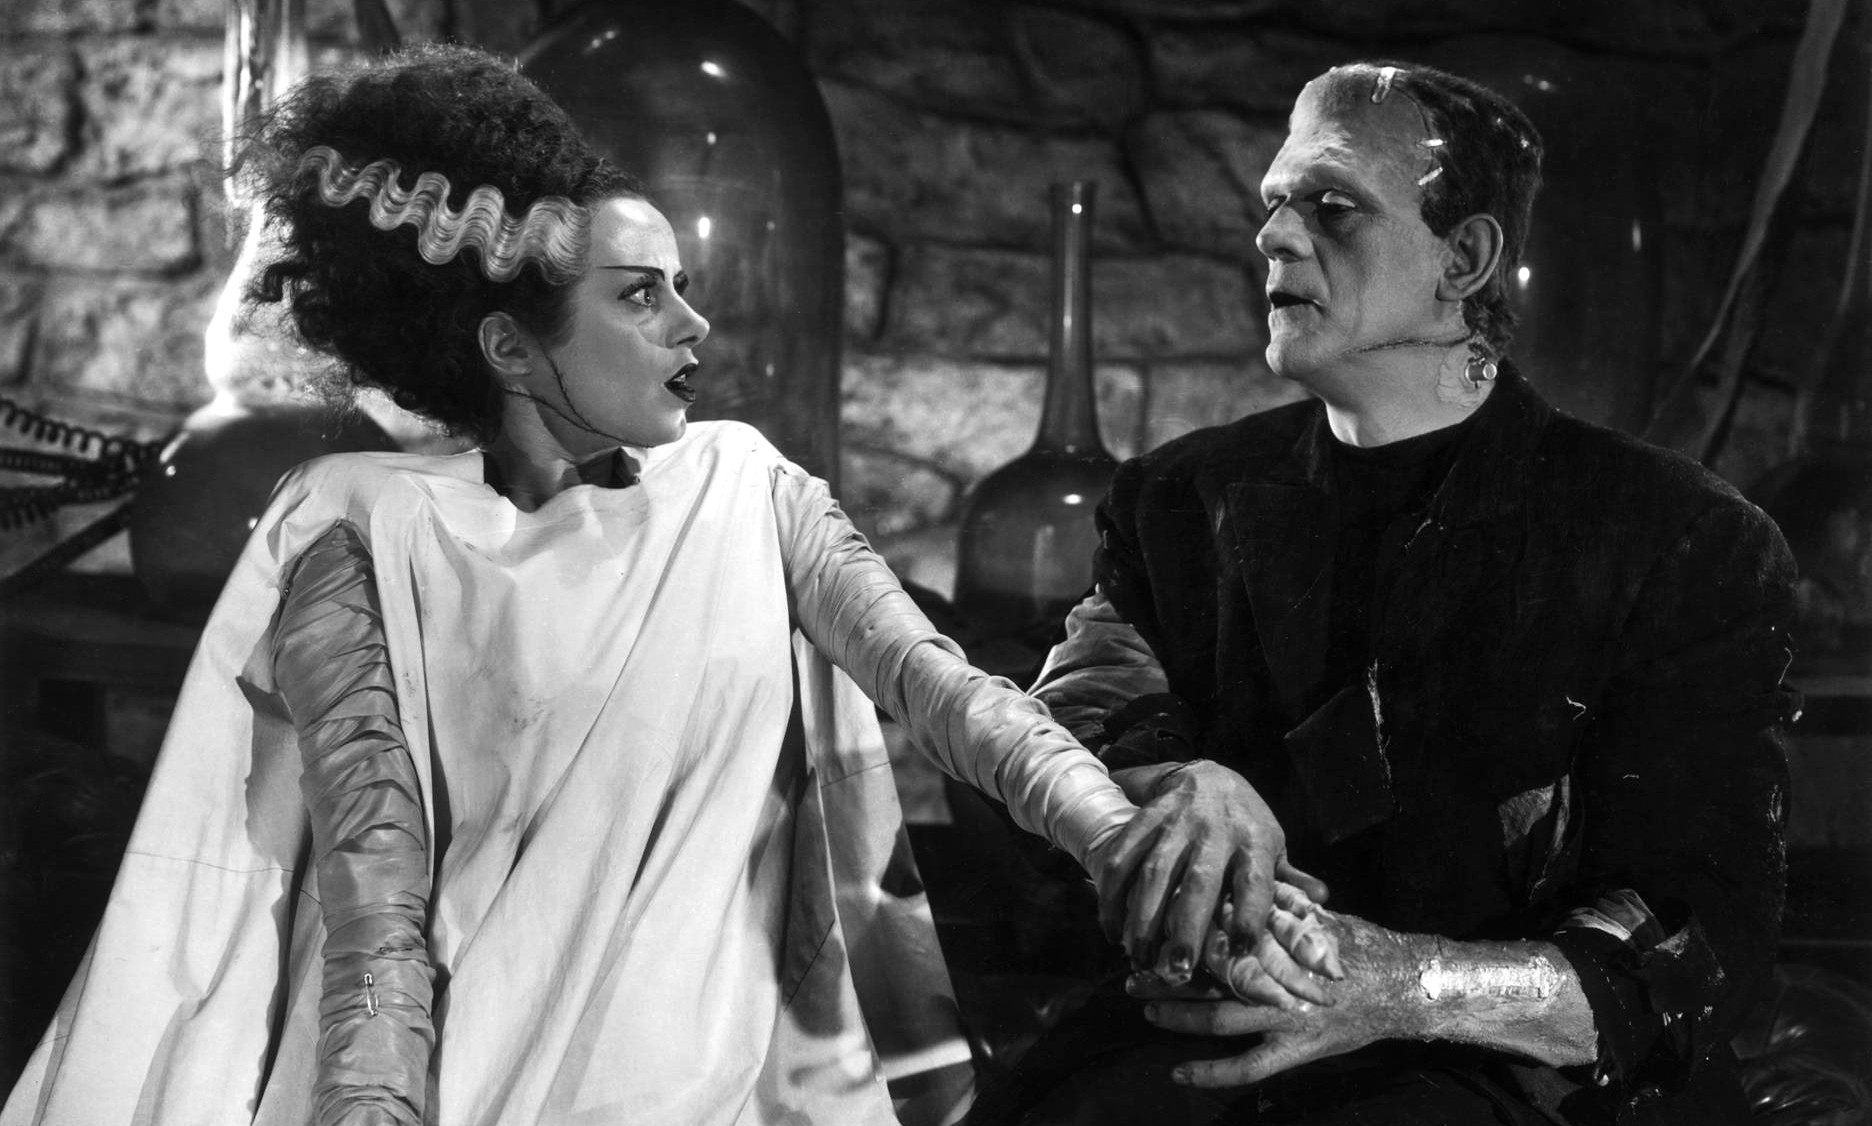 The Bride of Frankenstein via Arc Digital.